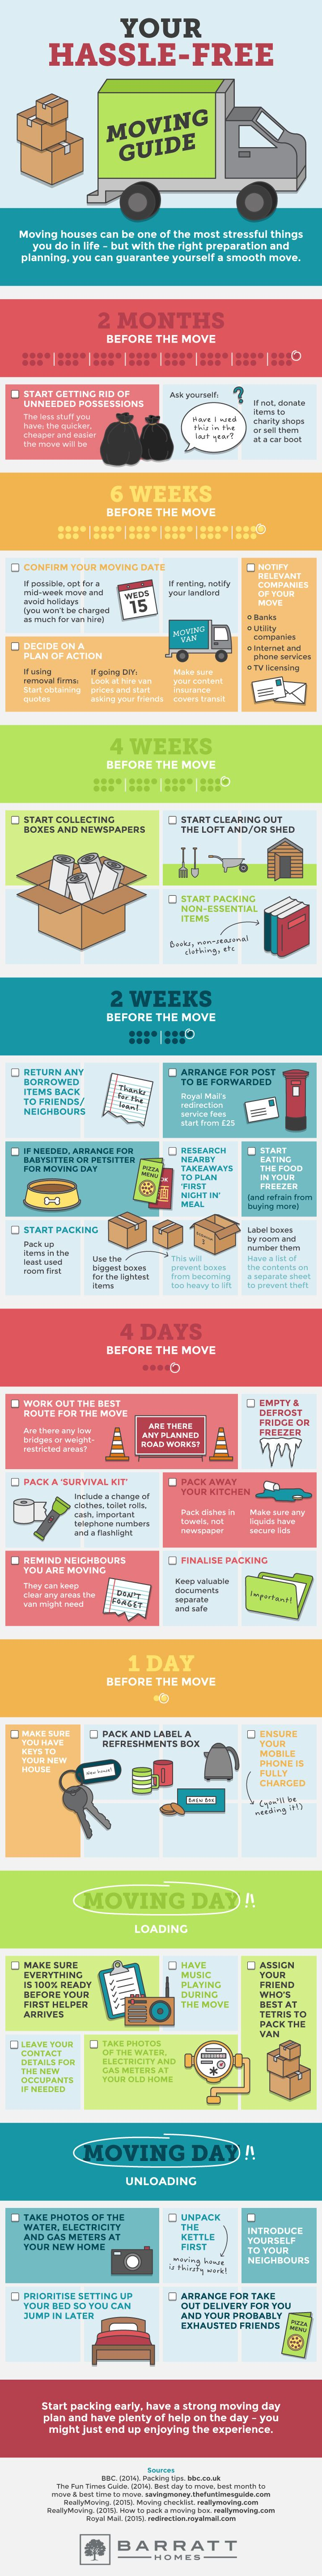 Not sure how to get your stuff together in a timely manner? Let this moving guide map it out for you.